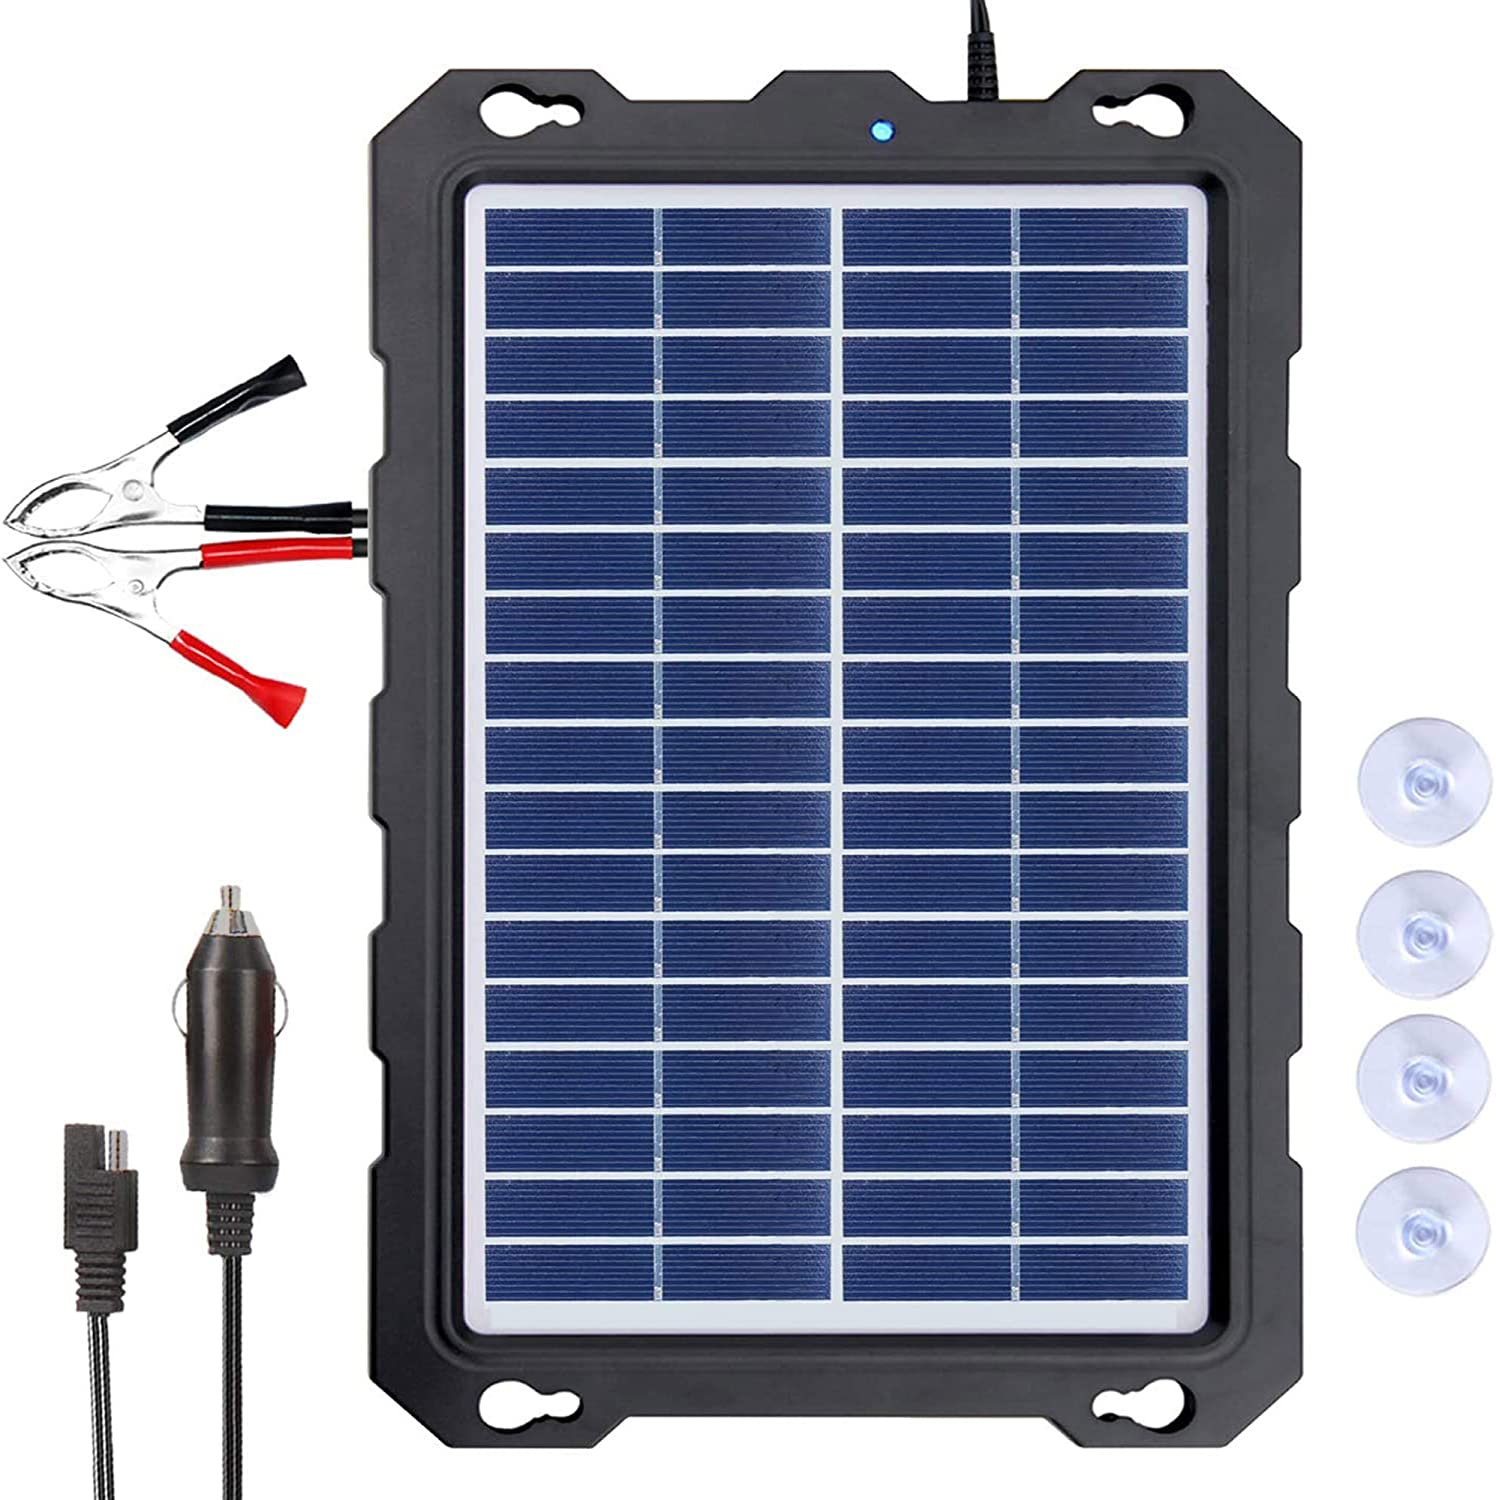 POWOXI 7.5W-Solar-Battery-Trickle-Charger-Maintainer -12V Portable Waterproof Solar Panel Trickle Charging Kit for Car, Automotive